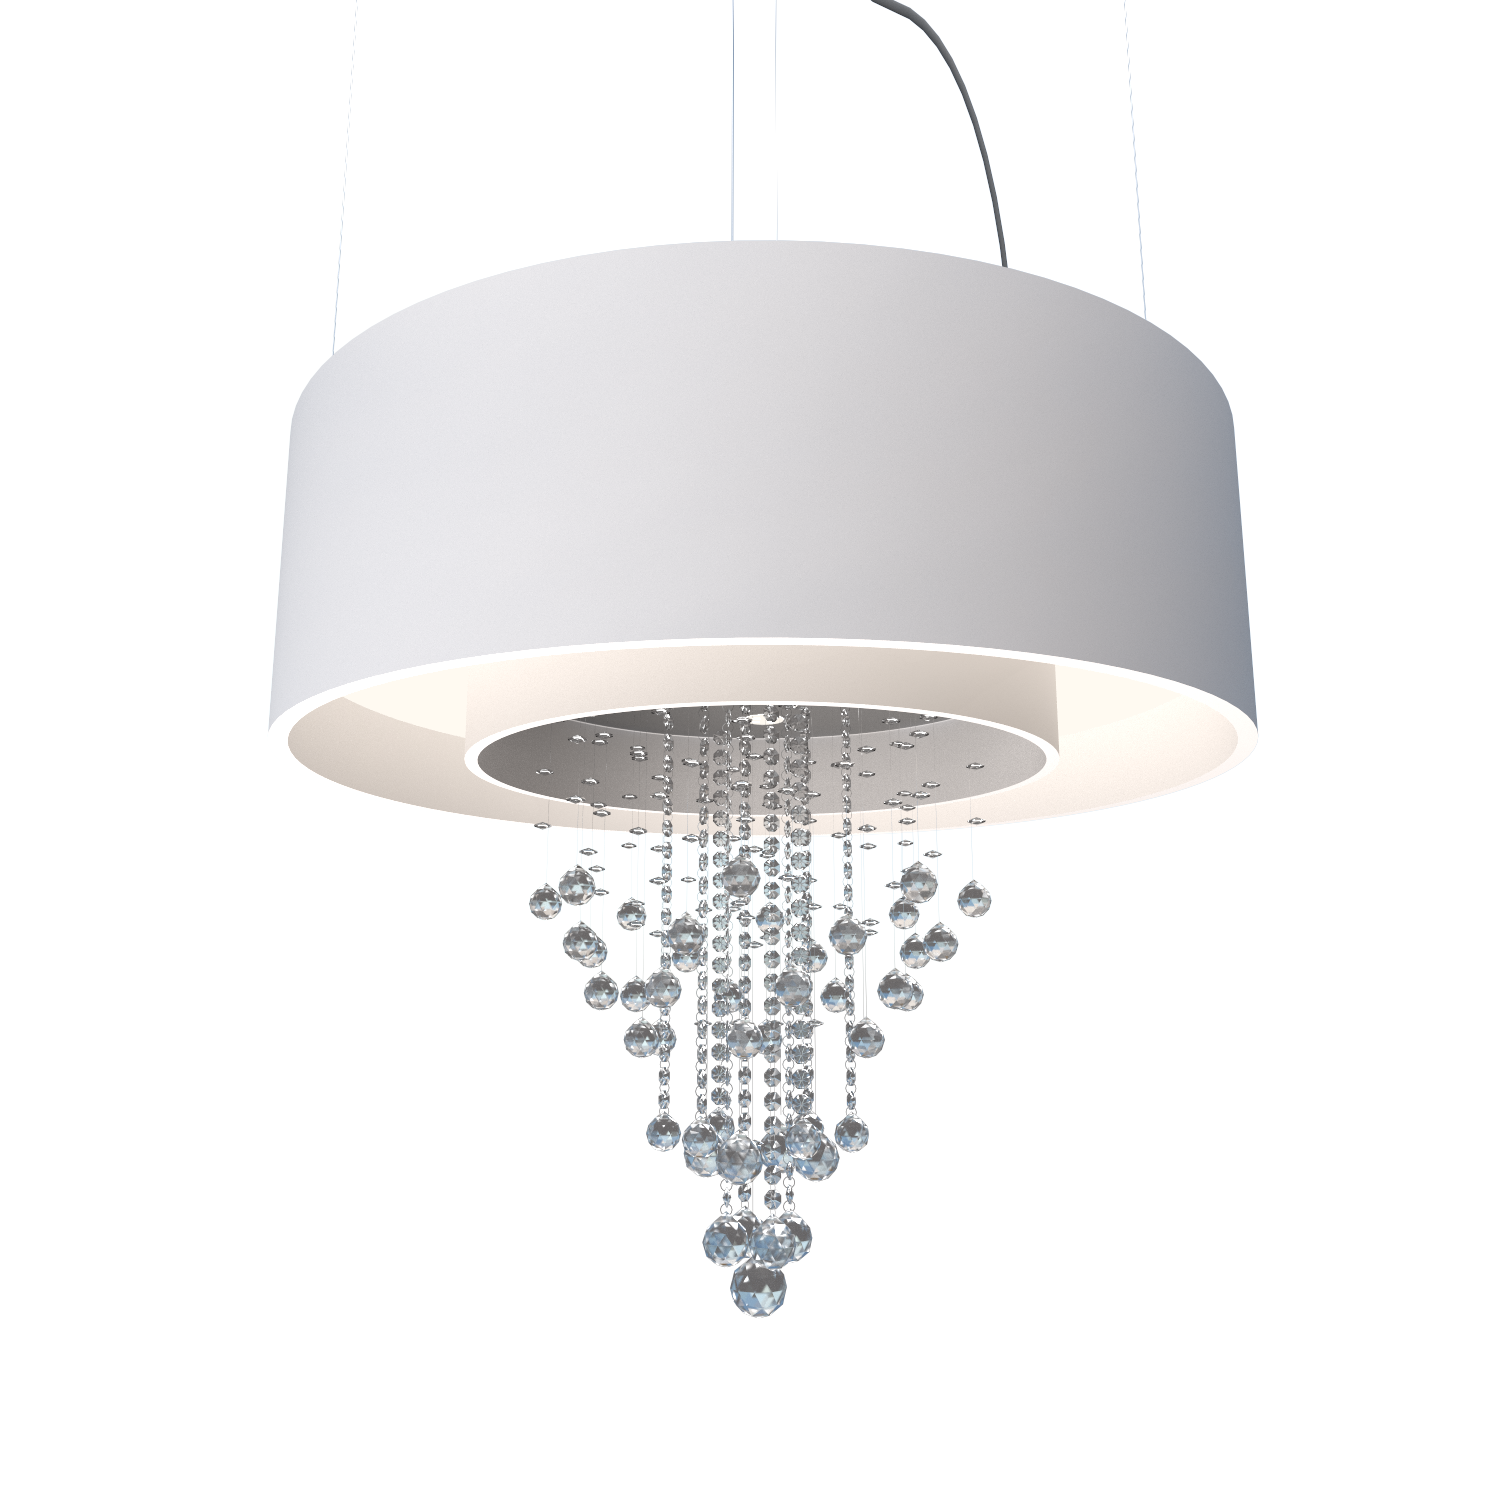 Pendant Lamp Accord Cristais 215C - Cristais Line Accord Lighting | 25. Iredescent White